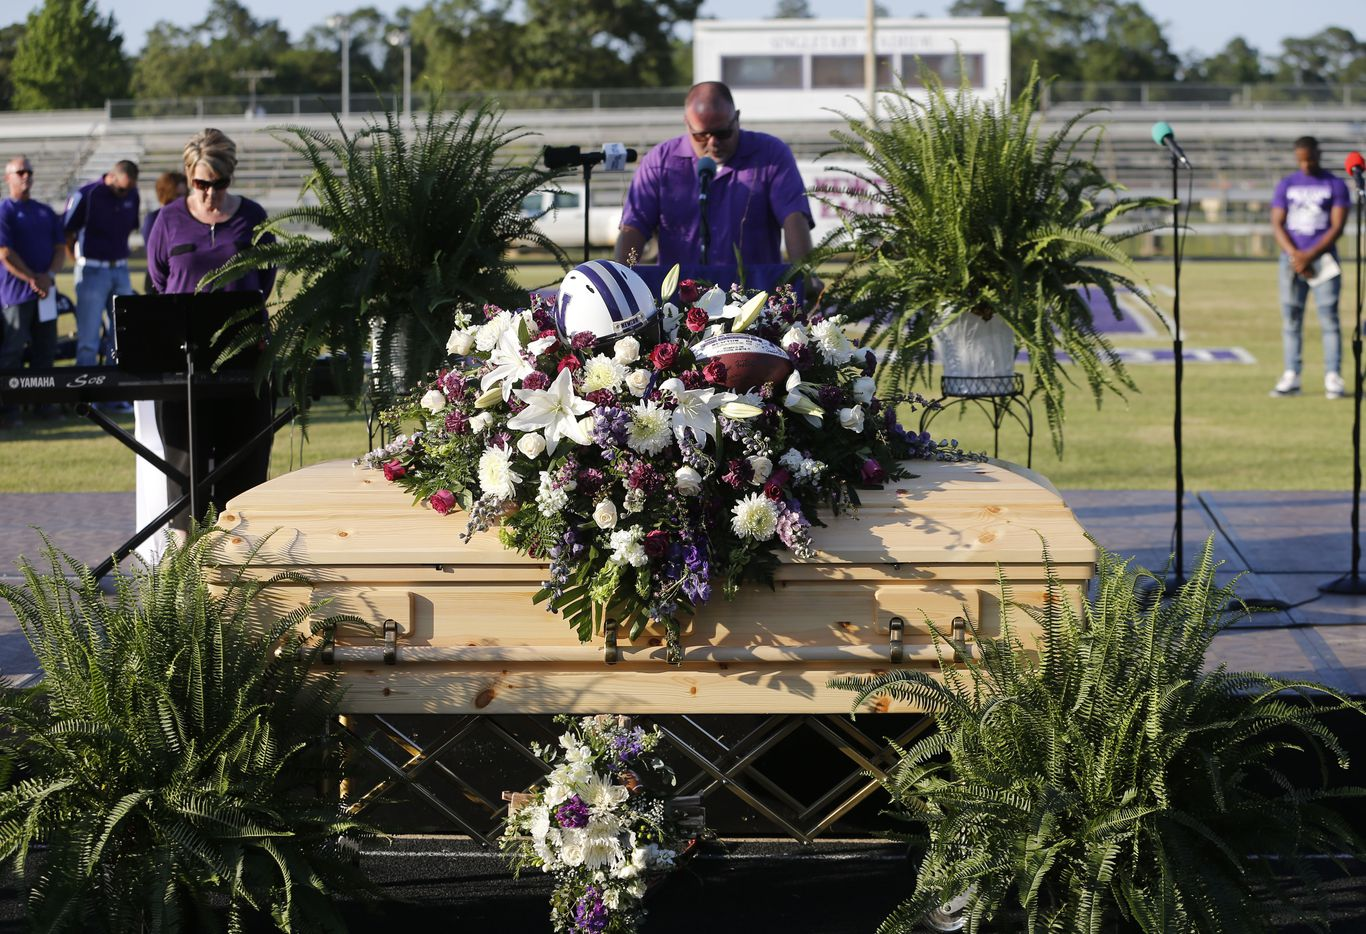 """Moment of silence led by Newton High School assistant principal Tabor Westbrook during the memorial service for Newton High School head football coach William Theodore """"W.T."""" Johnston at Curtis Barbay Field at Newton High School in Newton, Texas on Wednesday, May 15, 2019. (Vernon Bryant/The Dallas Morning News)"""